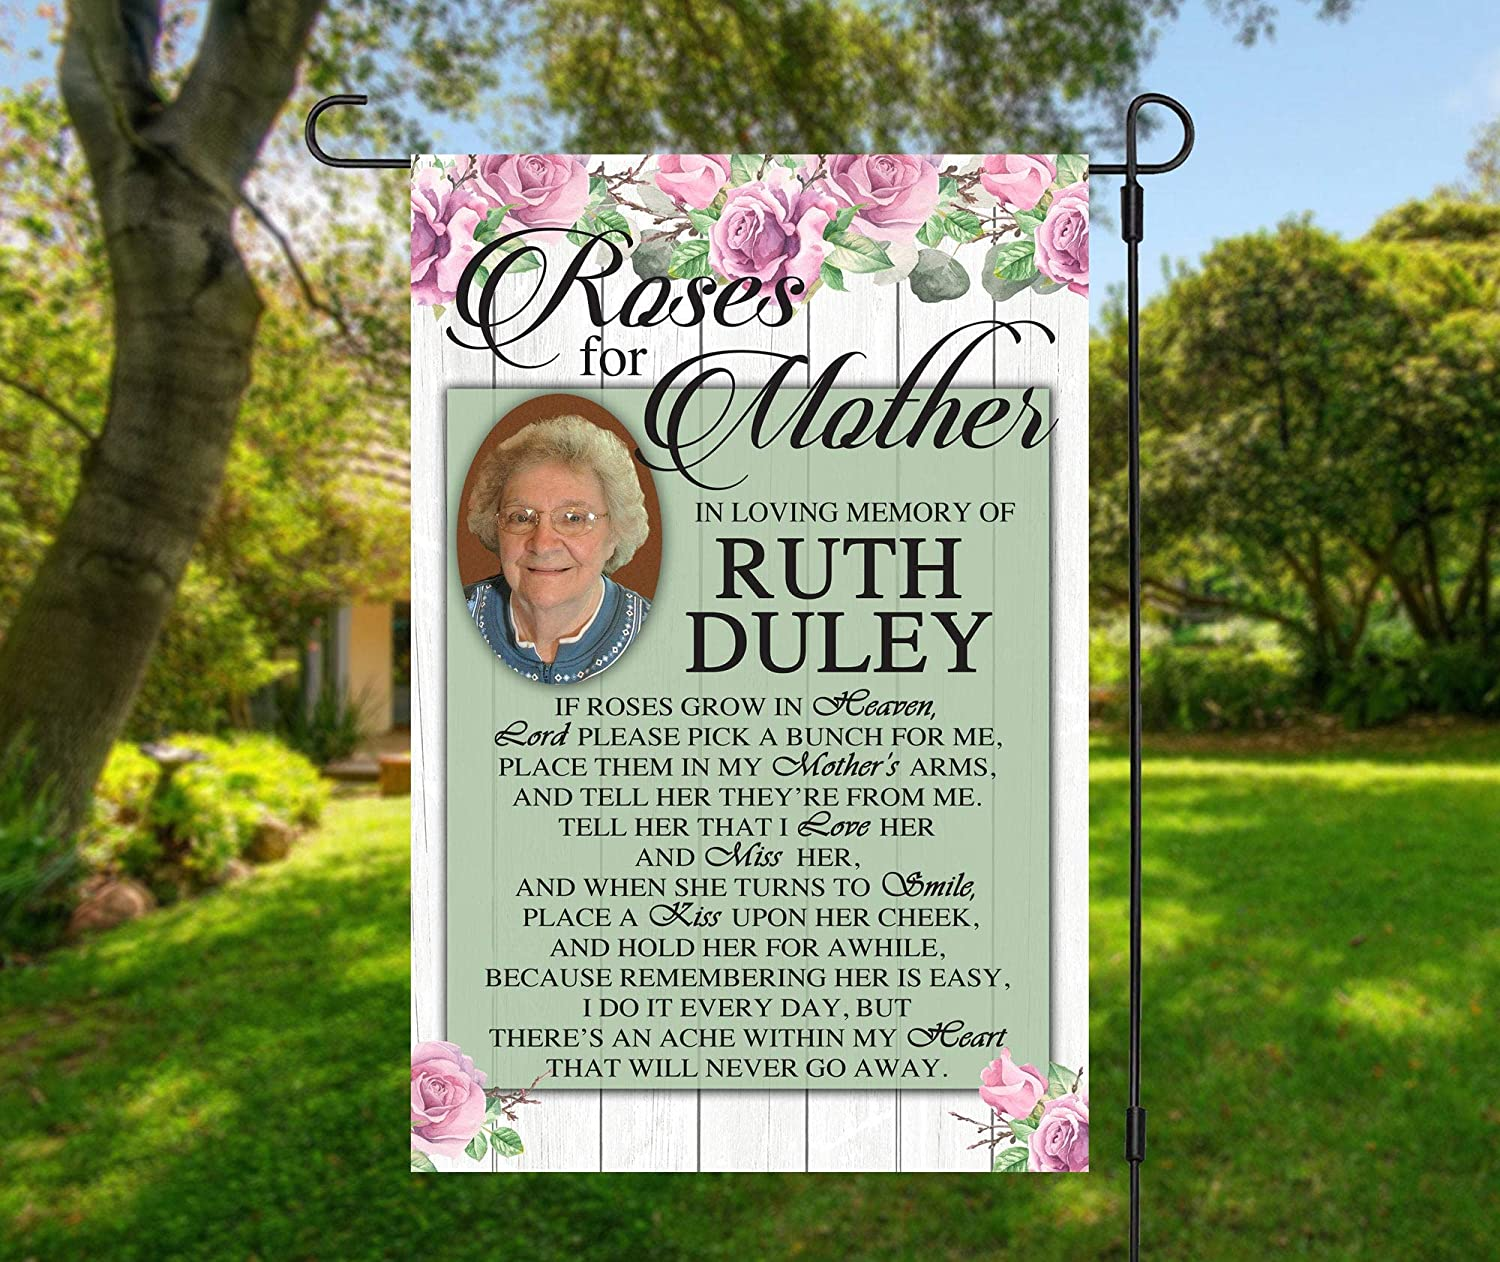 Personalized Photo Memorial Garden Flag, Any Message Single Sided, in Loving Memory, Roses for Mother Cemetery Grave Flag Decor